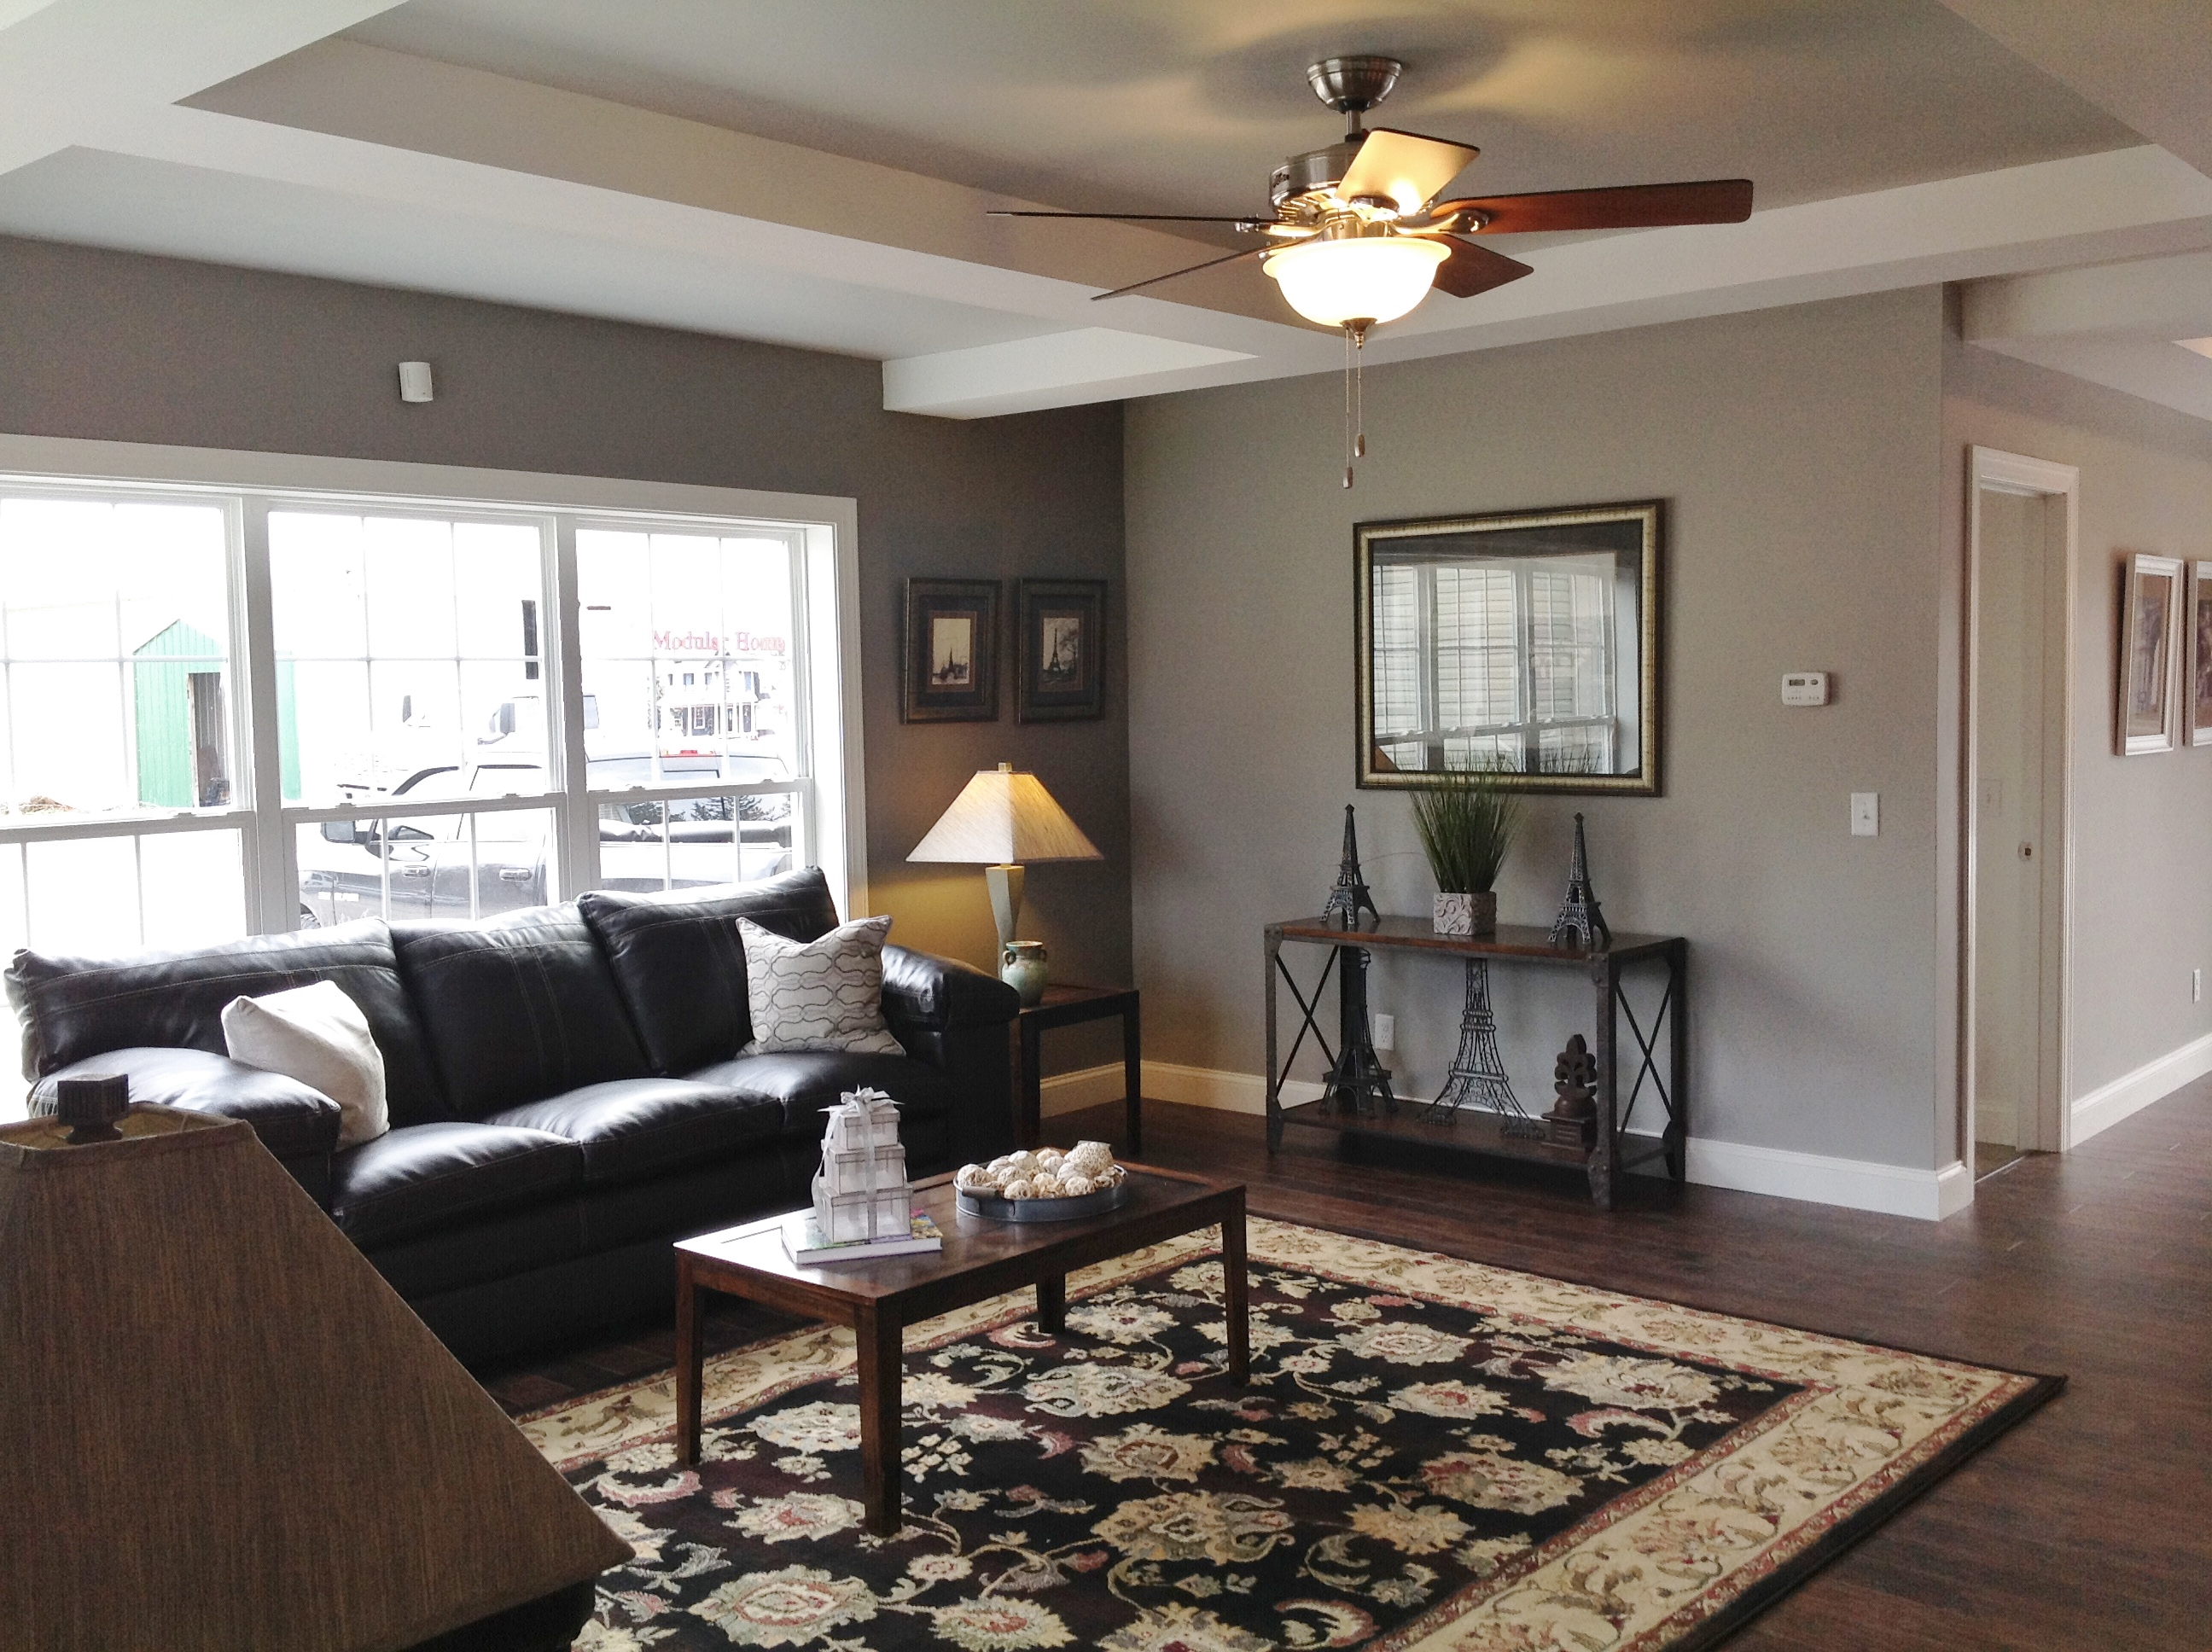 Great room located just beyond foyer.